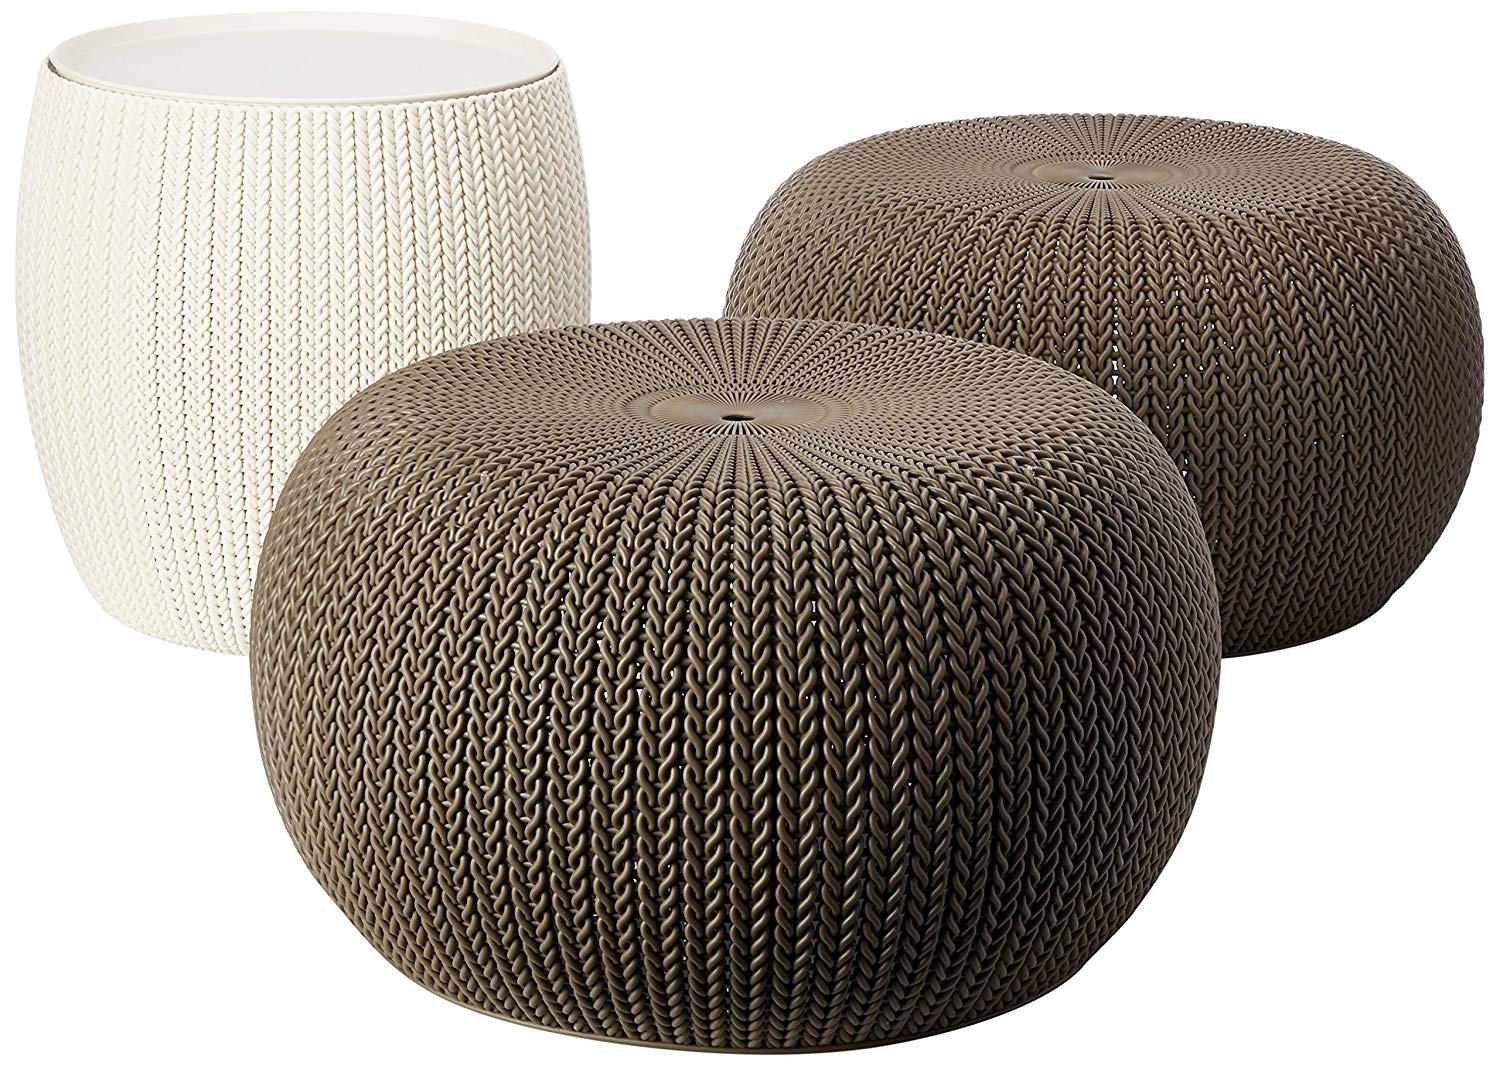 Top 5 Best Ottoman Poufs in 2020 Reviews- Buyers' Guide